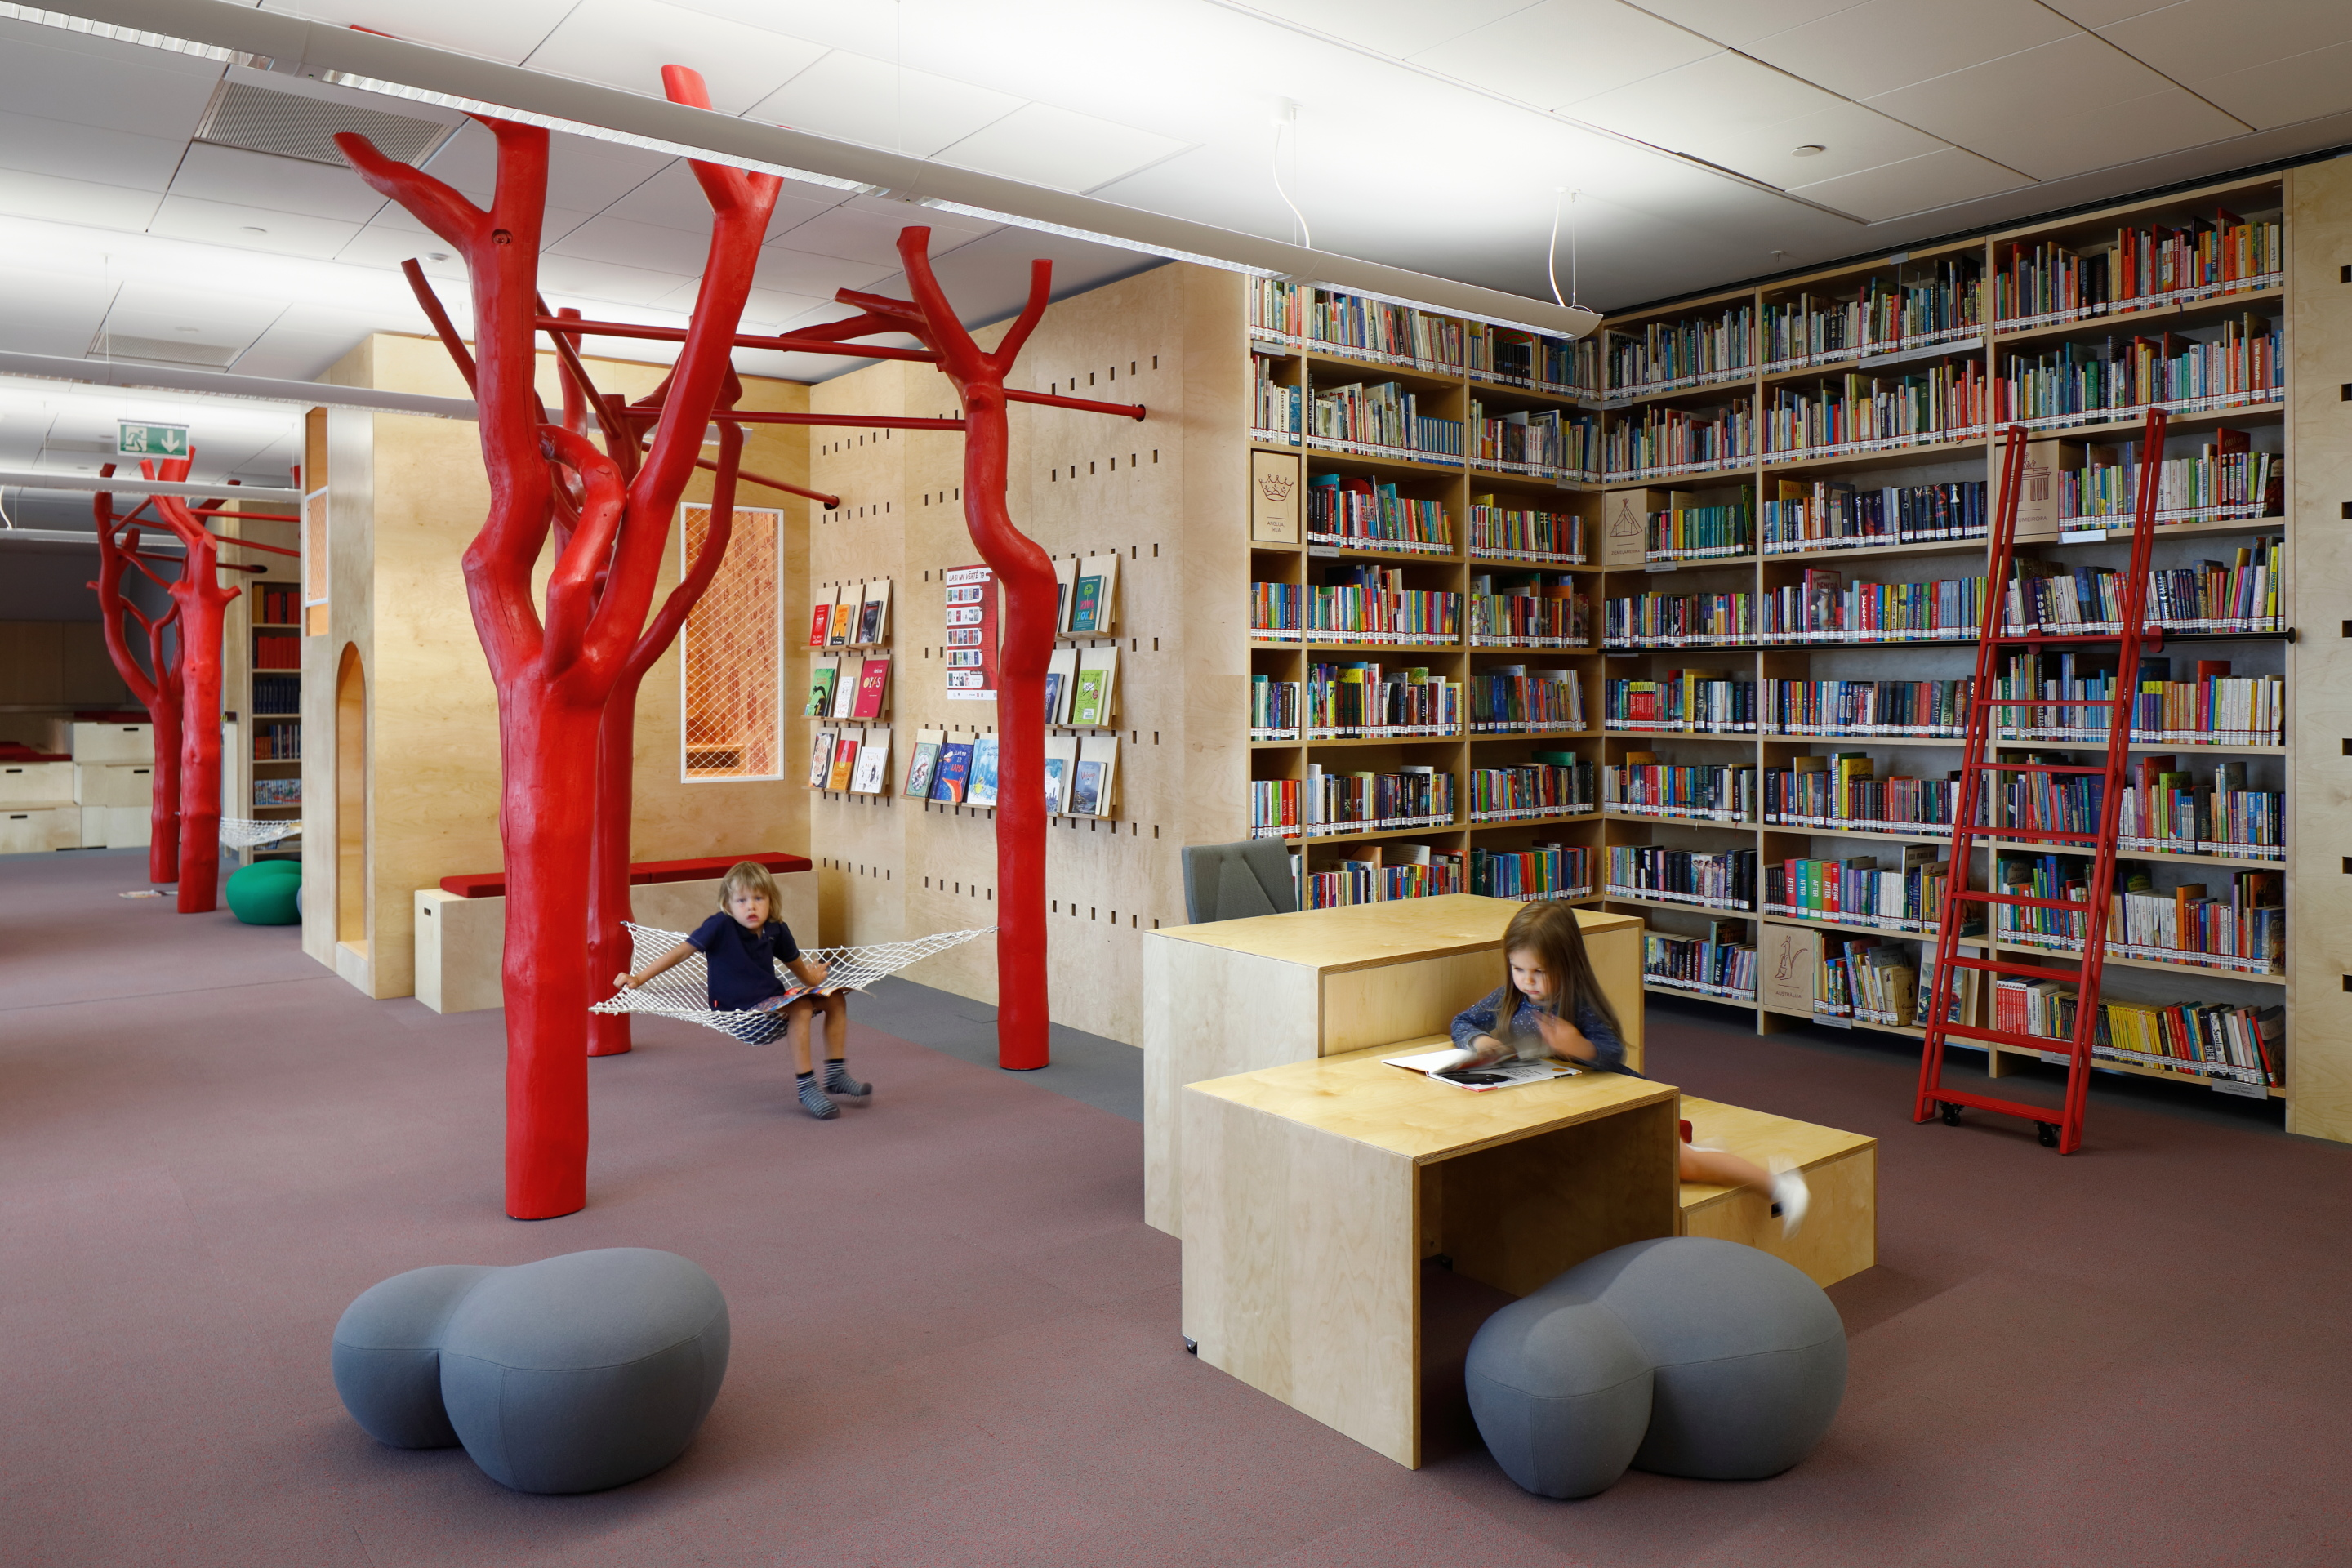 gaiss-041-nll-childrens-library-04-photo-ansis-starks